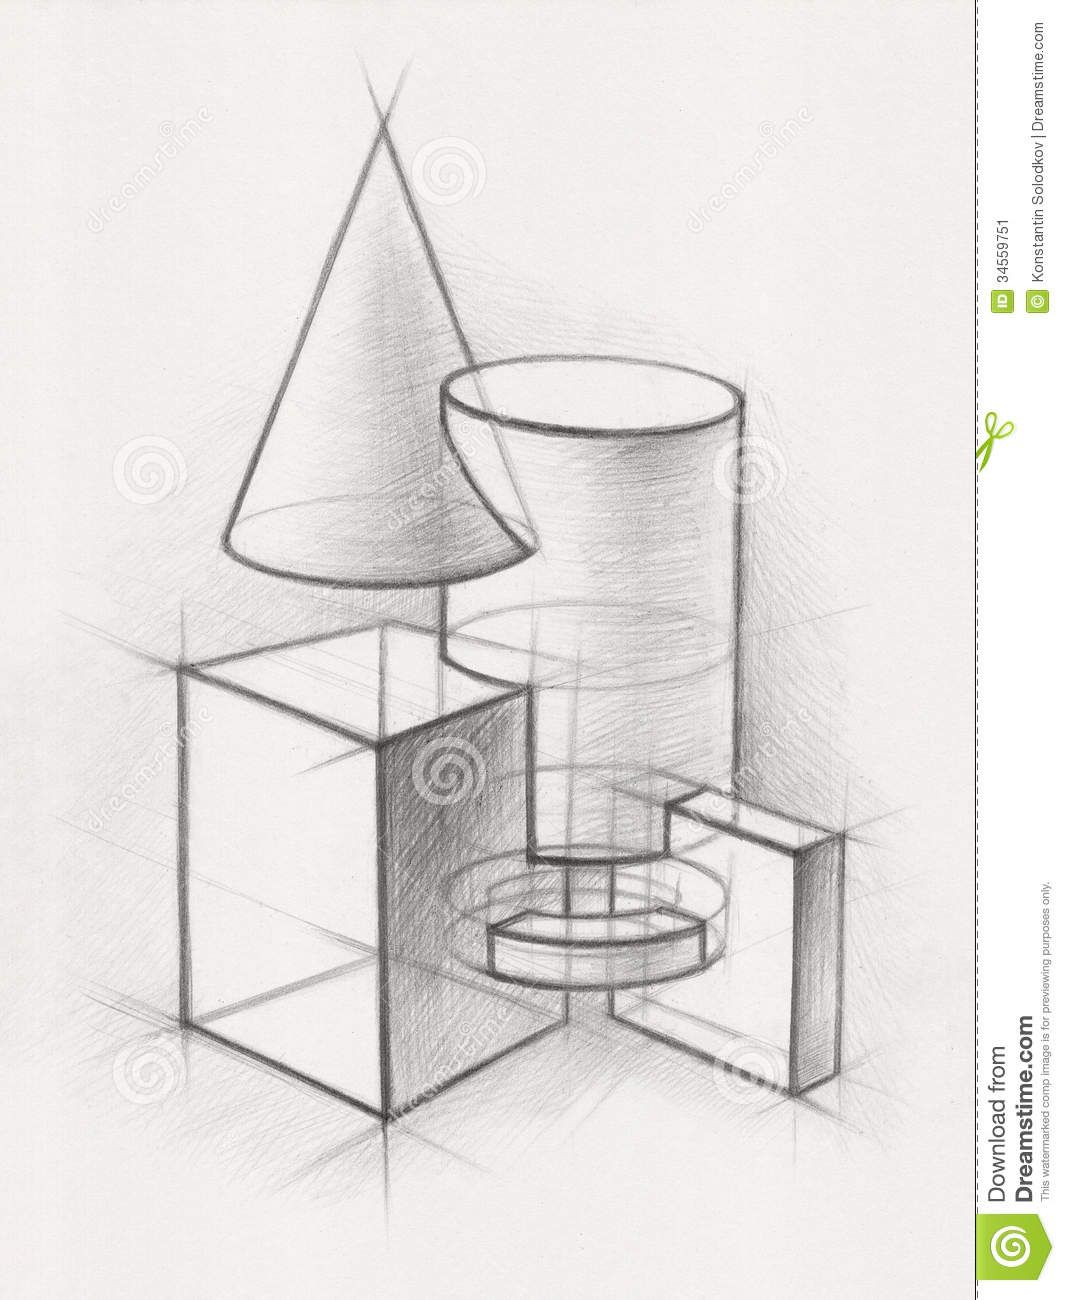 solid-geometric-shapes-illustration-pencil-drawing-34559751.jpg ... for 3d Geometric Shapes Drawings  565ane